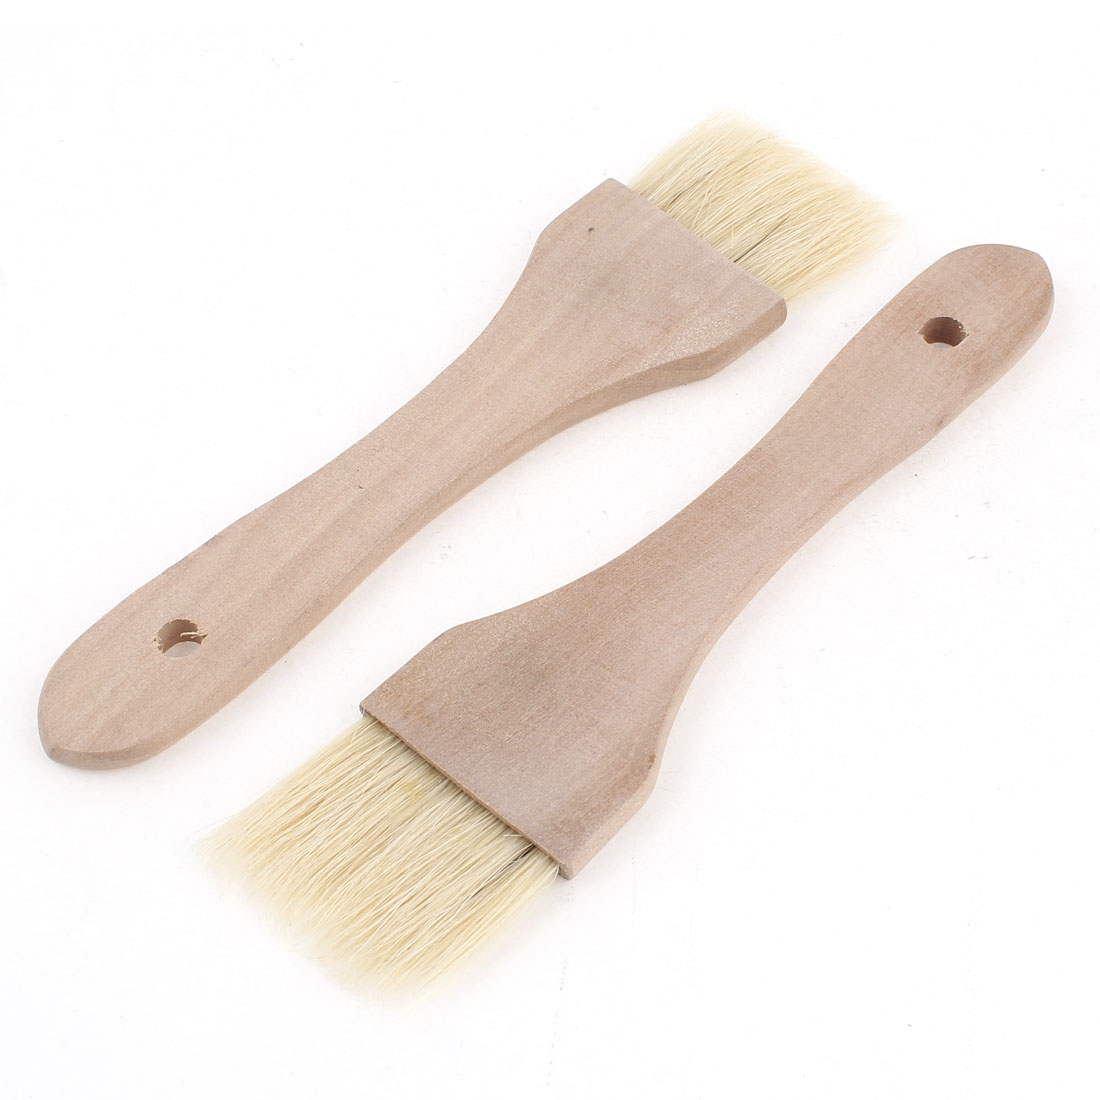 Outdoor 19cm Long Barbecue BBQ Wooden Handle Soft Brush 2 Pcs